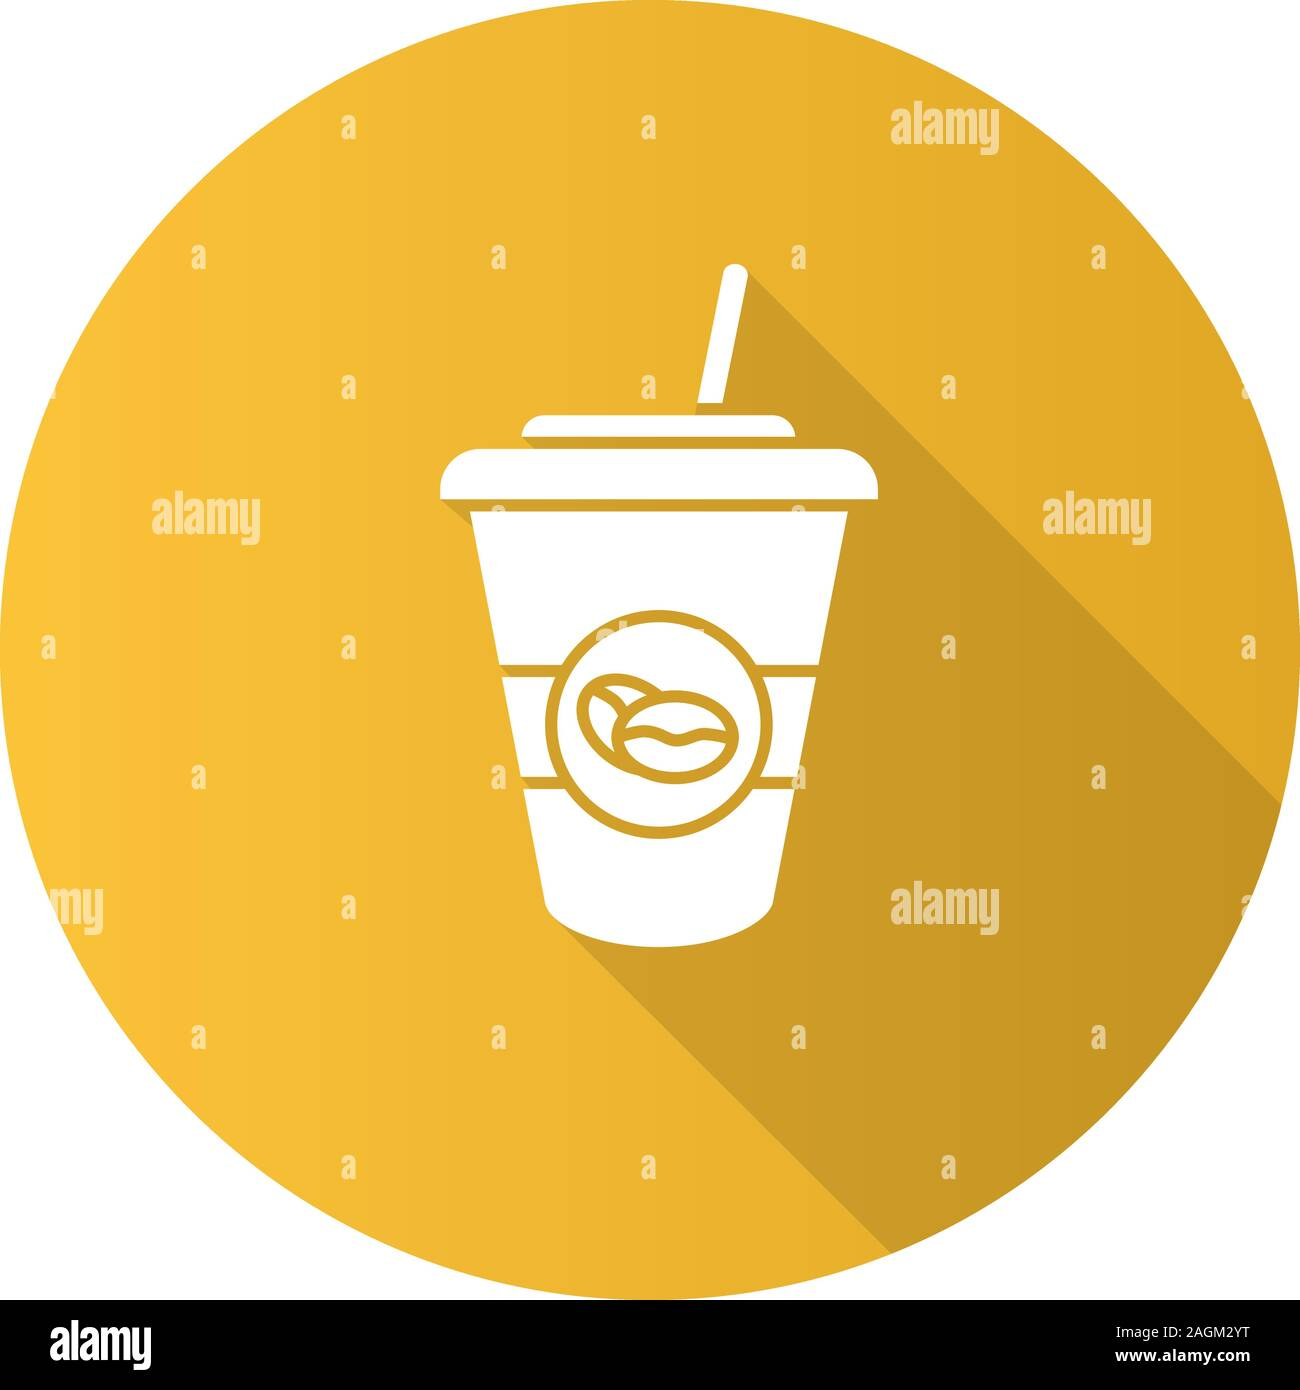 Iced Coffee Drink Flat Design Long Shadow Glyph Icon Disposable Coffee Cup With Straw Vector Silhouette Illustration Stock Vector Image Art Alamy